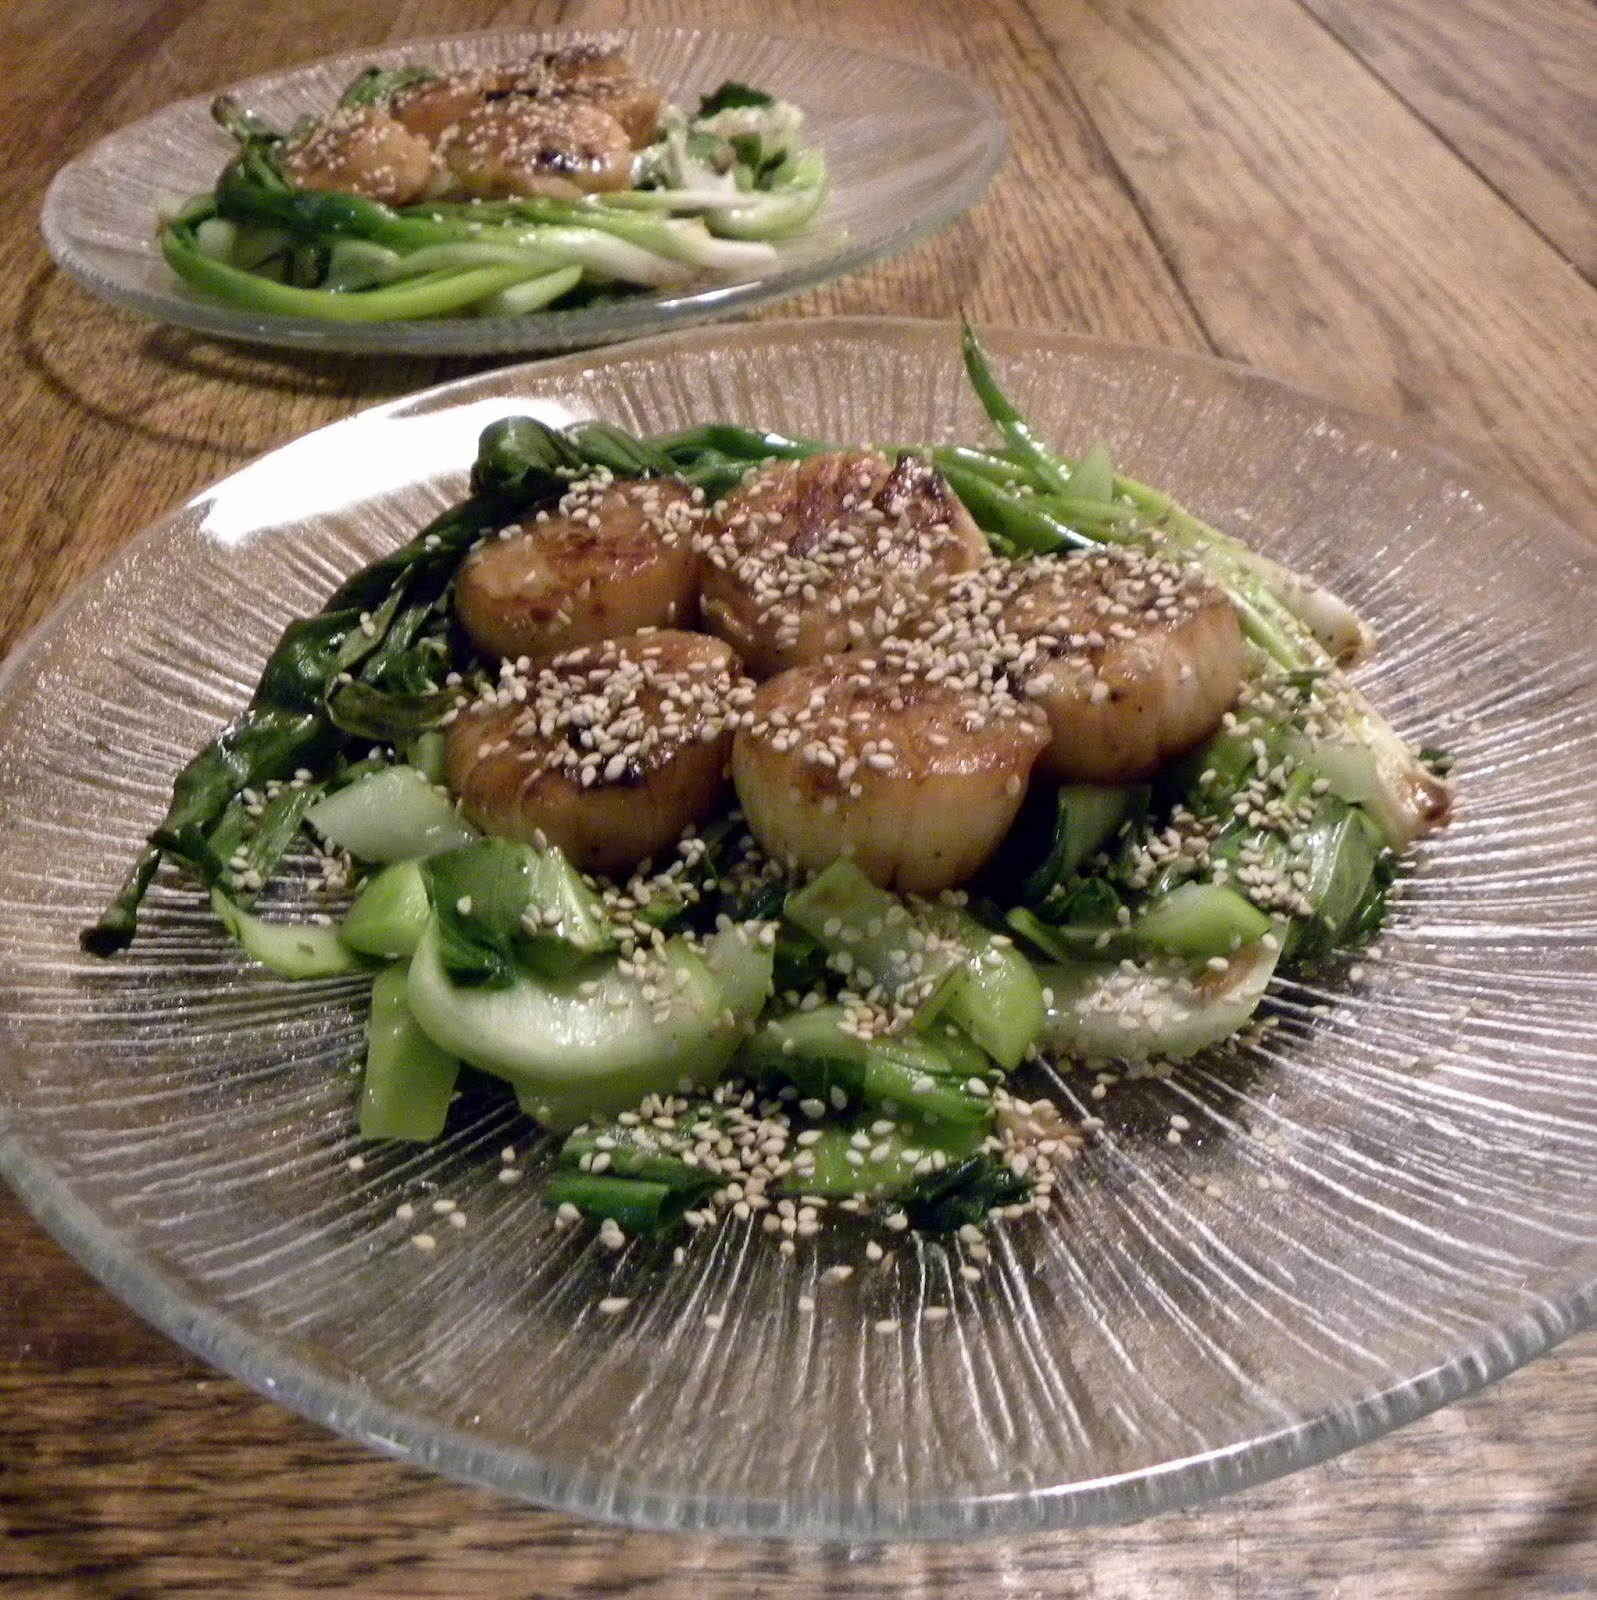 Scallops served with Sauteed Bok Choy and Grilled Scallions.